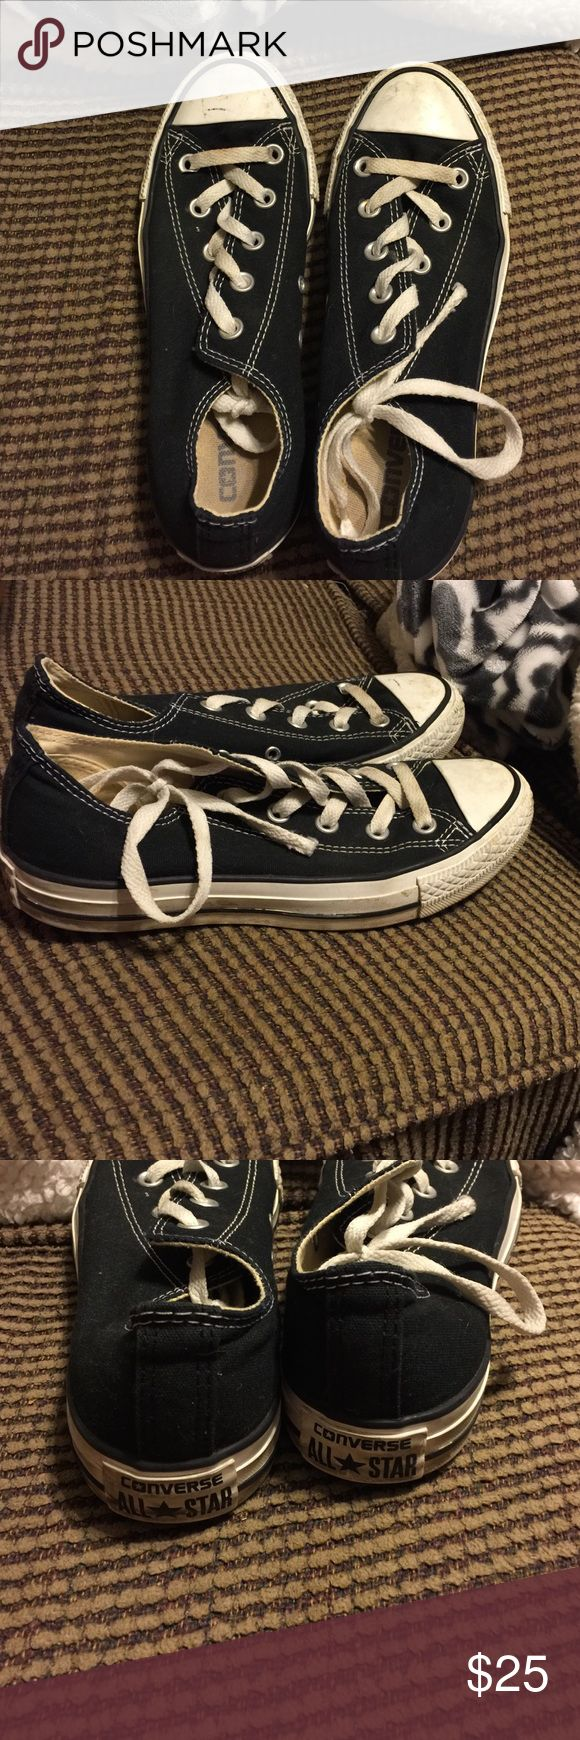 Black Converse All Star Very comfortable black chuck taylor converse. Low top shoe with white laces. Converse Shoes Sneakers